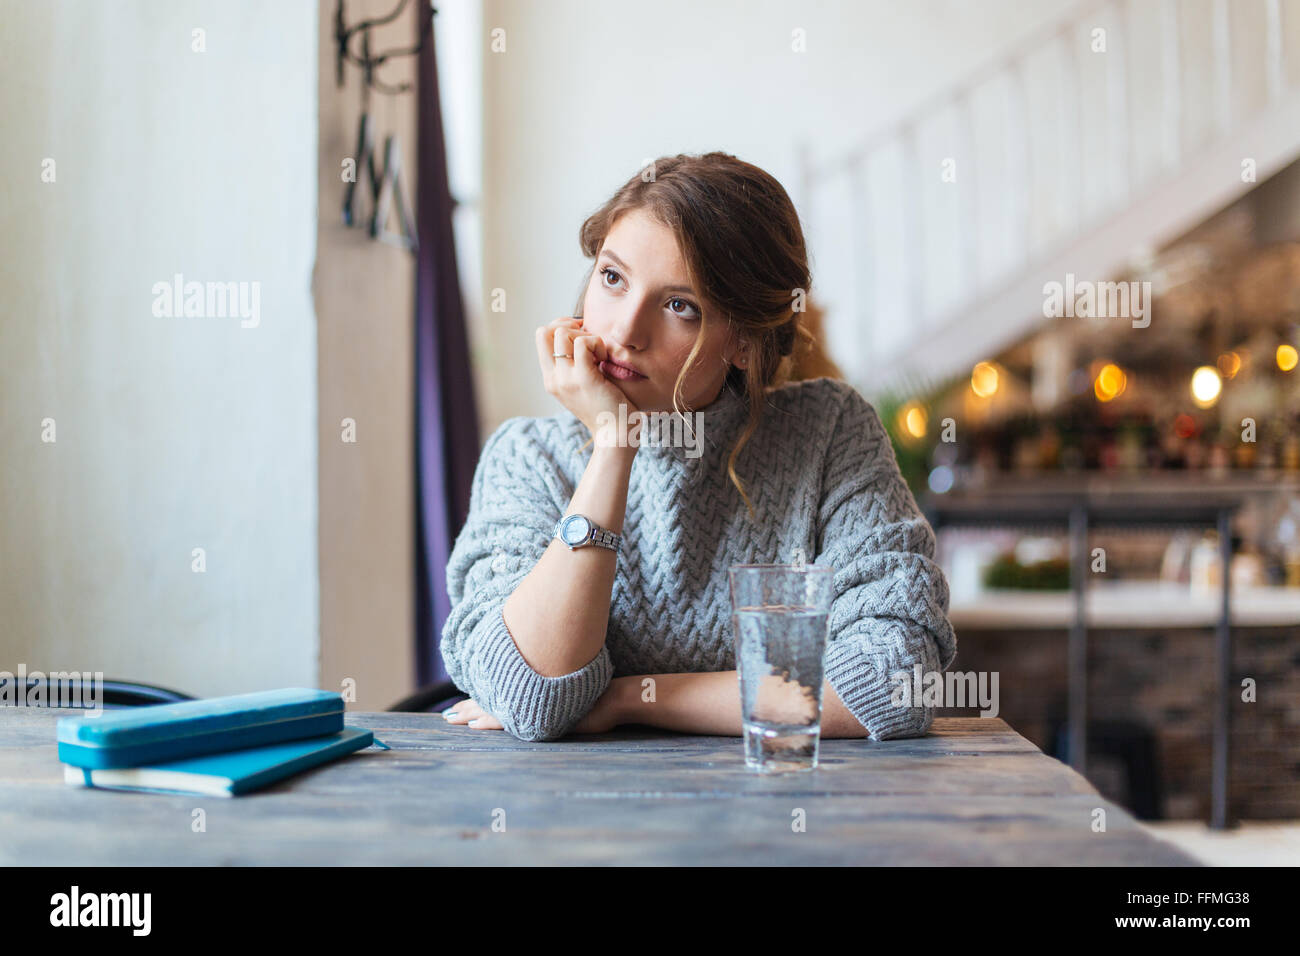 Femme en attente de quelqu'in cafe Photo Stock